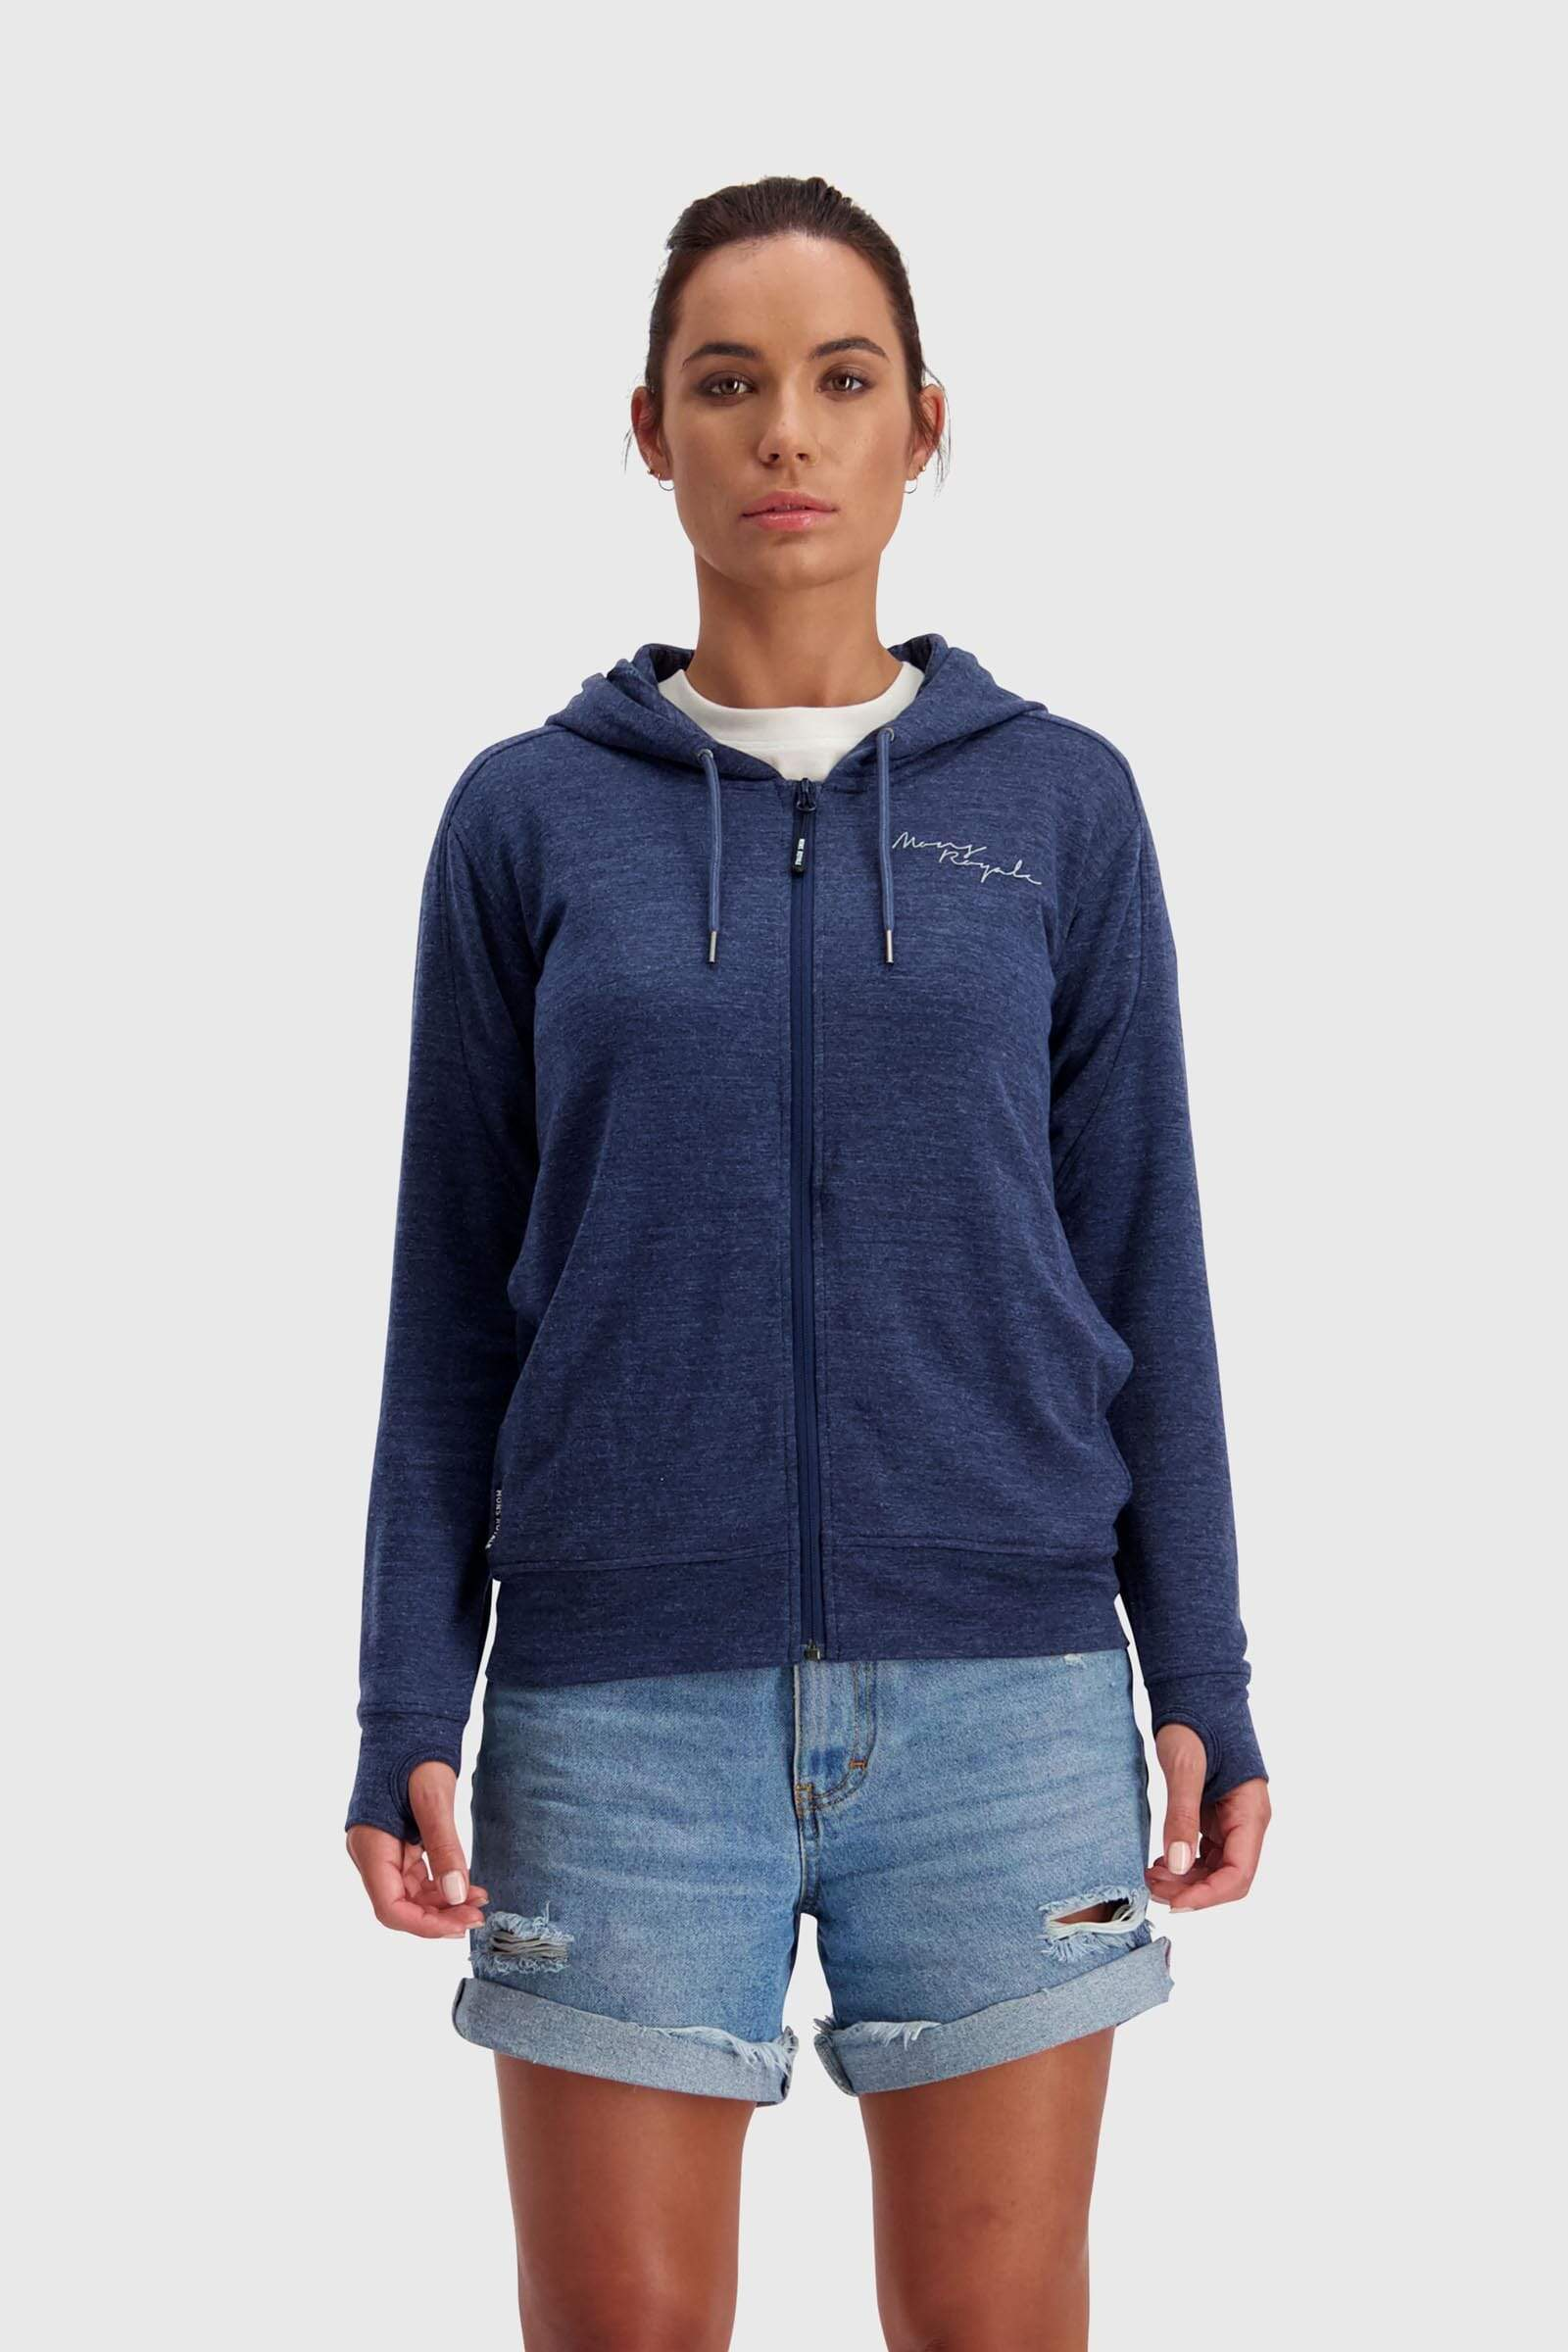 Covert Lite Zip Hoody - Navy